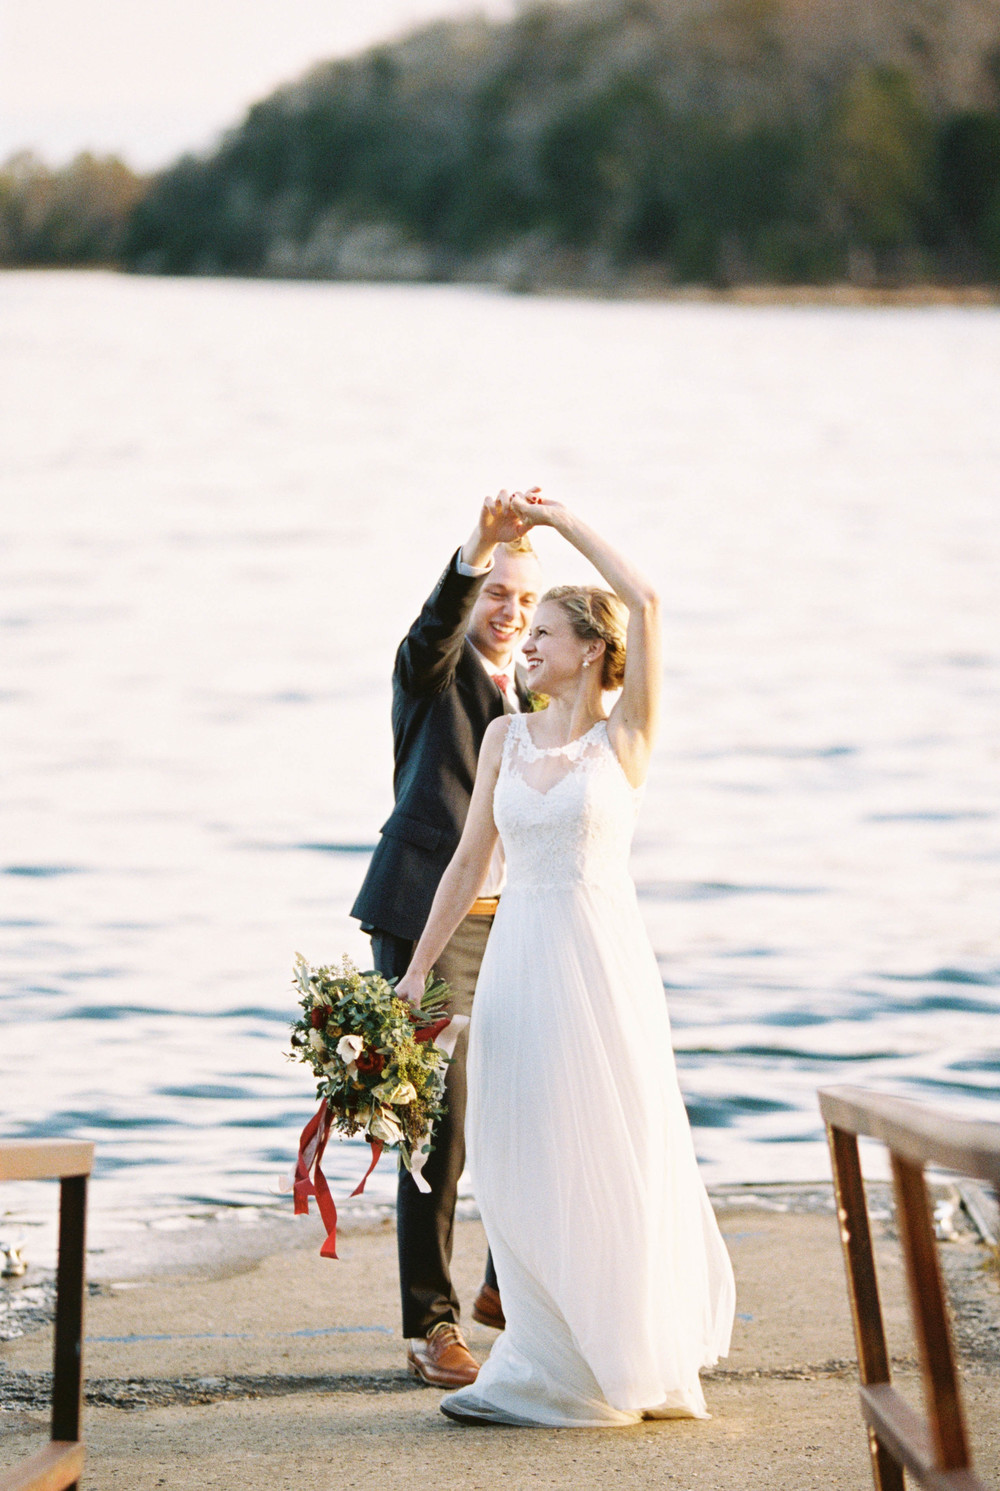 Dancing on the dock // Nashville Bride and Groom